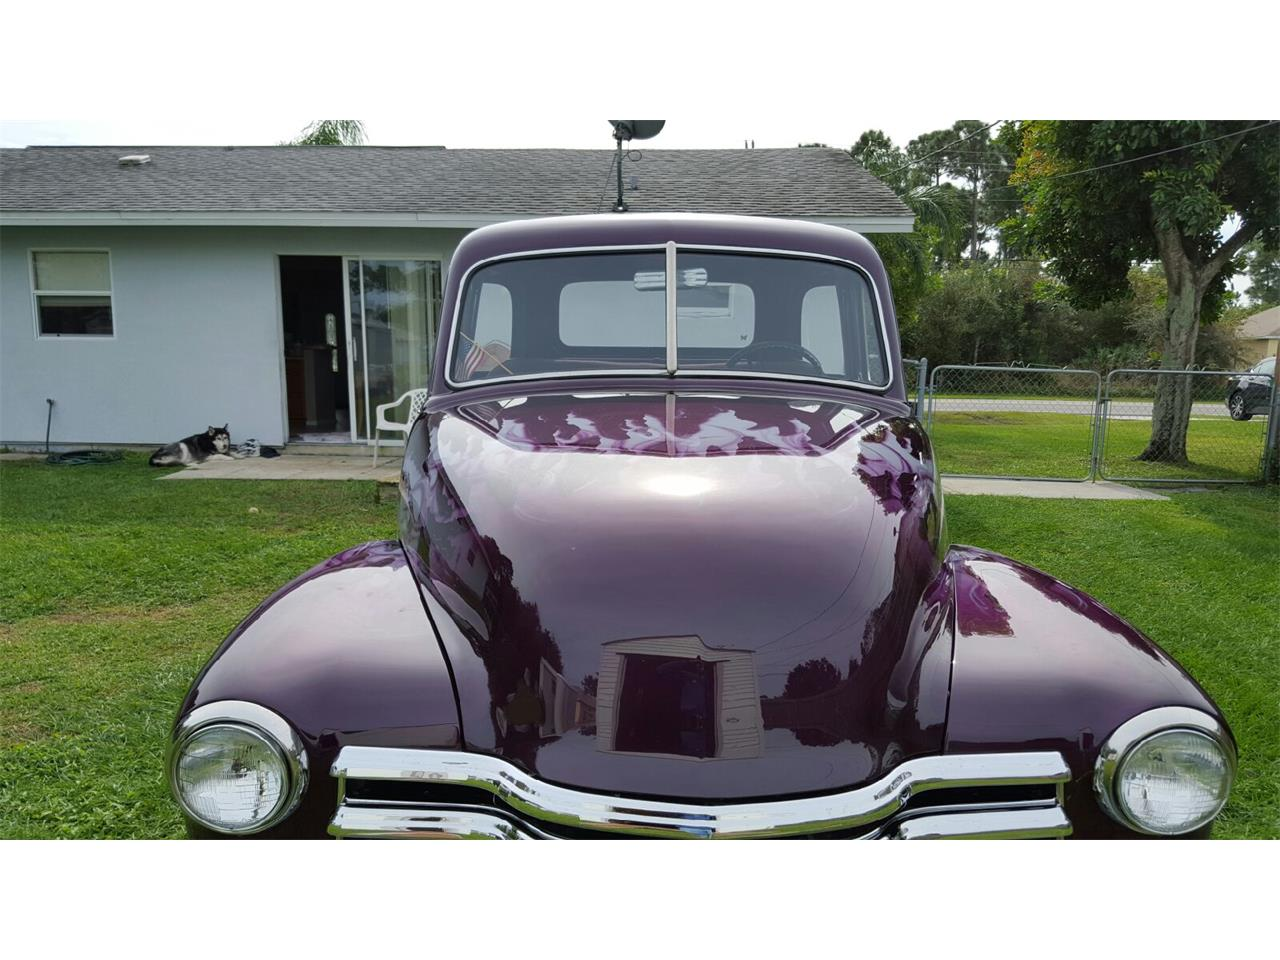 Large Picture of '49 Chevrolet Pickup - $40,000.00 Offered by a Private Seller - G9RX